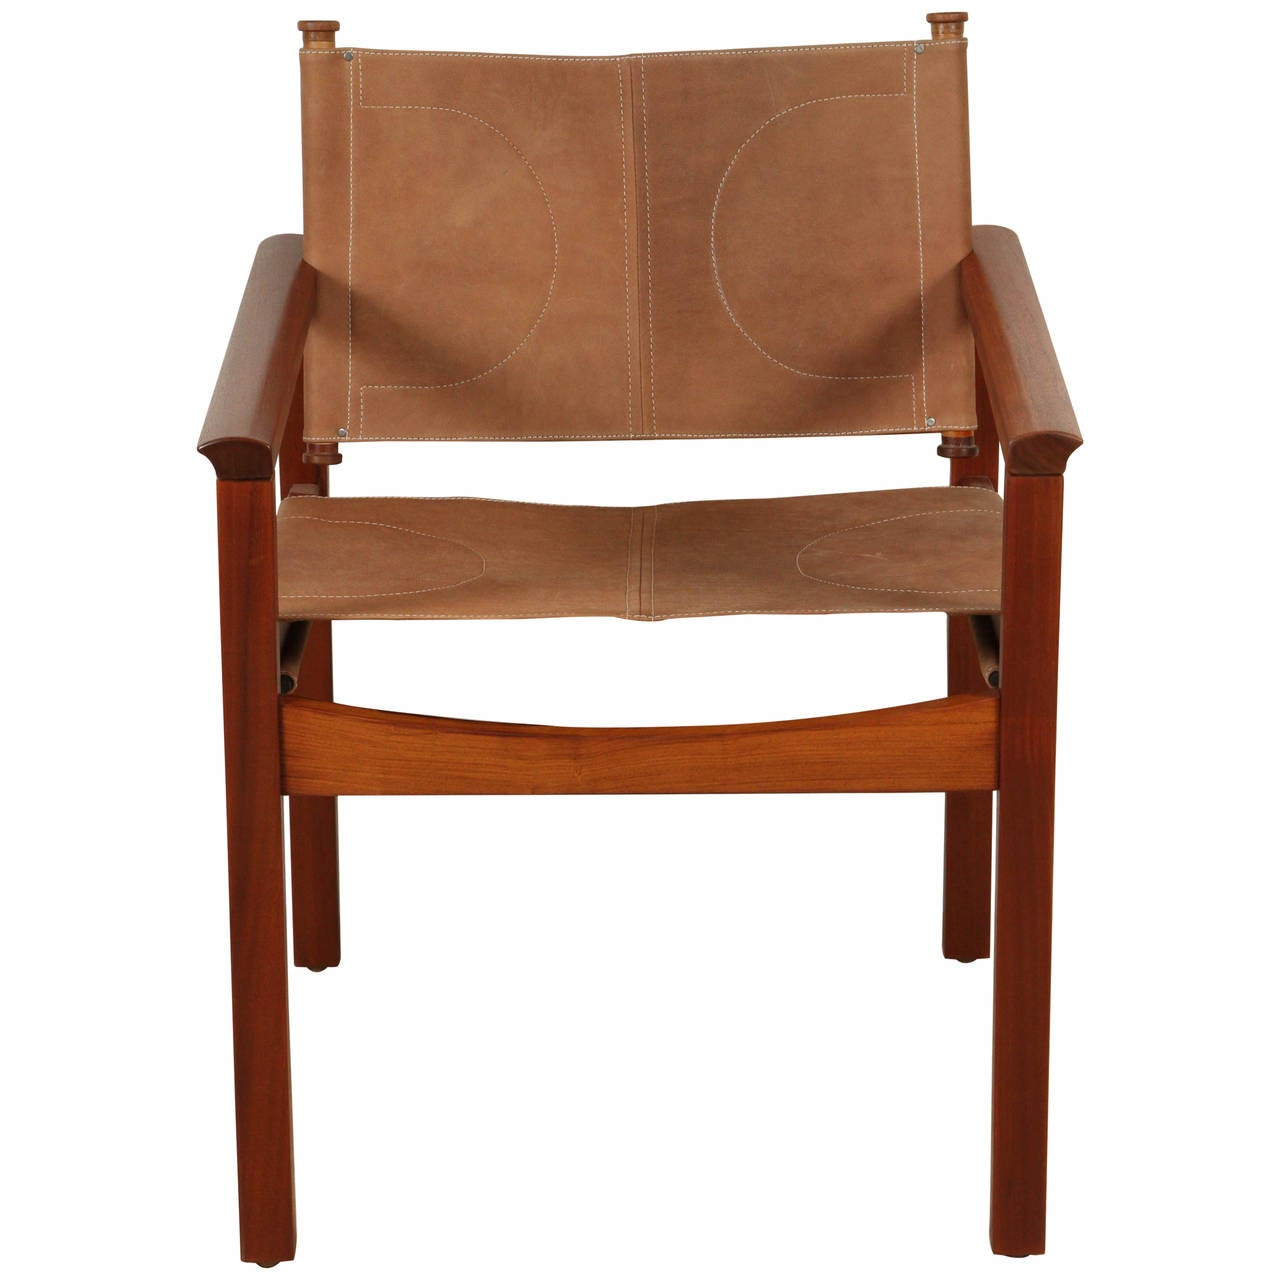 sling chairs for sale captain pontoon boats leather chair by michel arnoult at 1stdibs